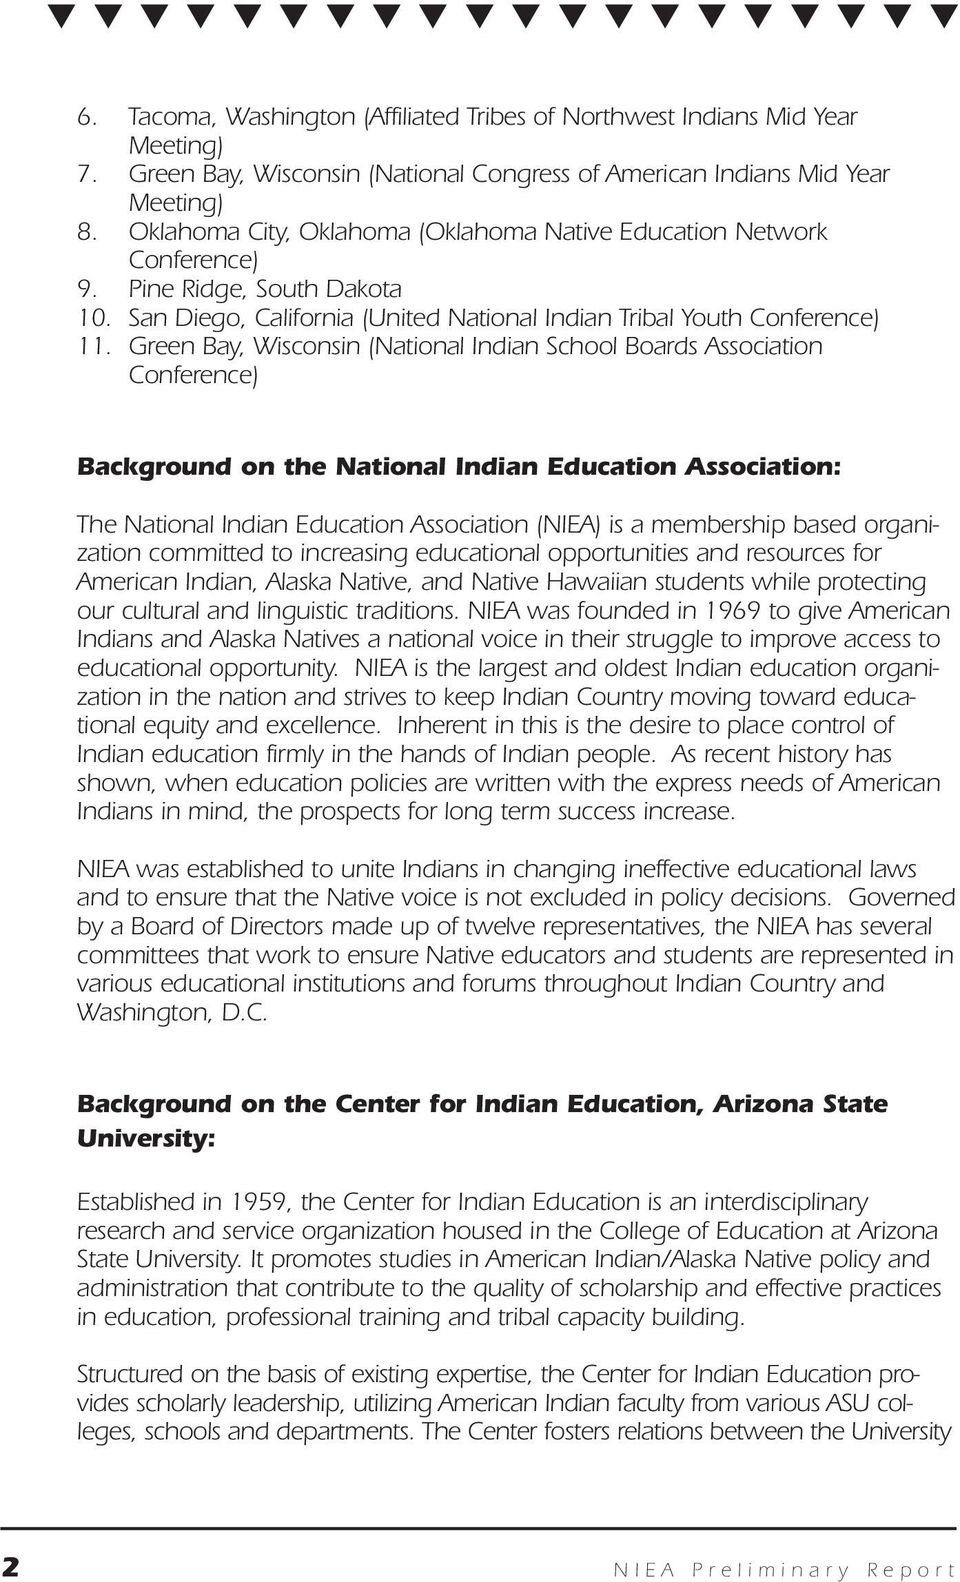 Green Bay, Wisconsin (National Indian School Boards Association Conference) Background on the National Indian Education Association: The National Indian Education Association (NIEA) is a membership